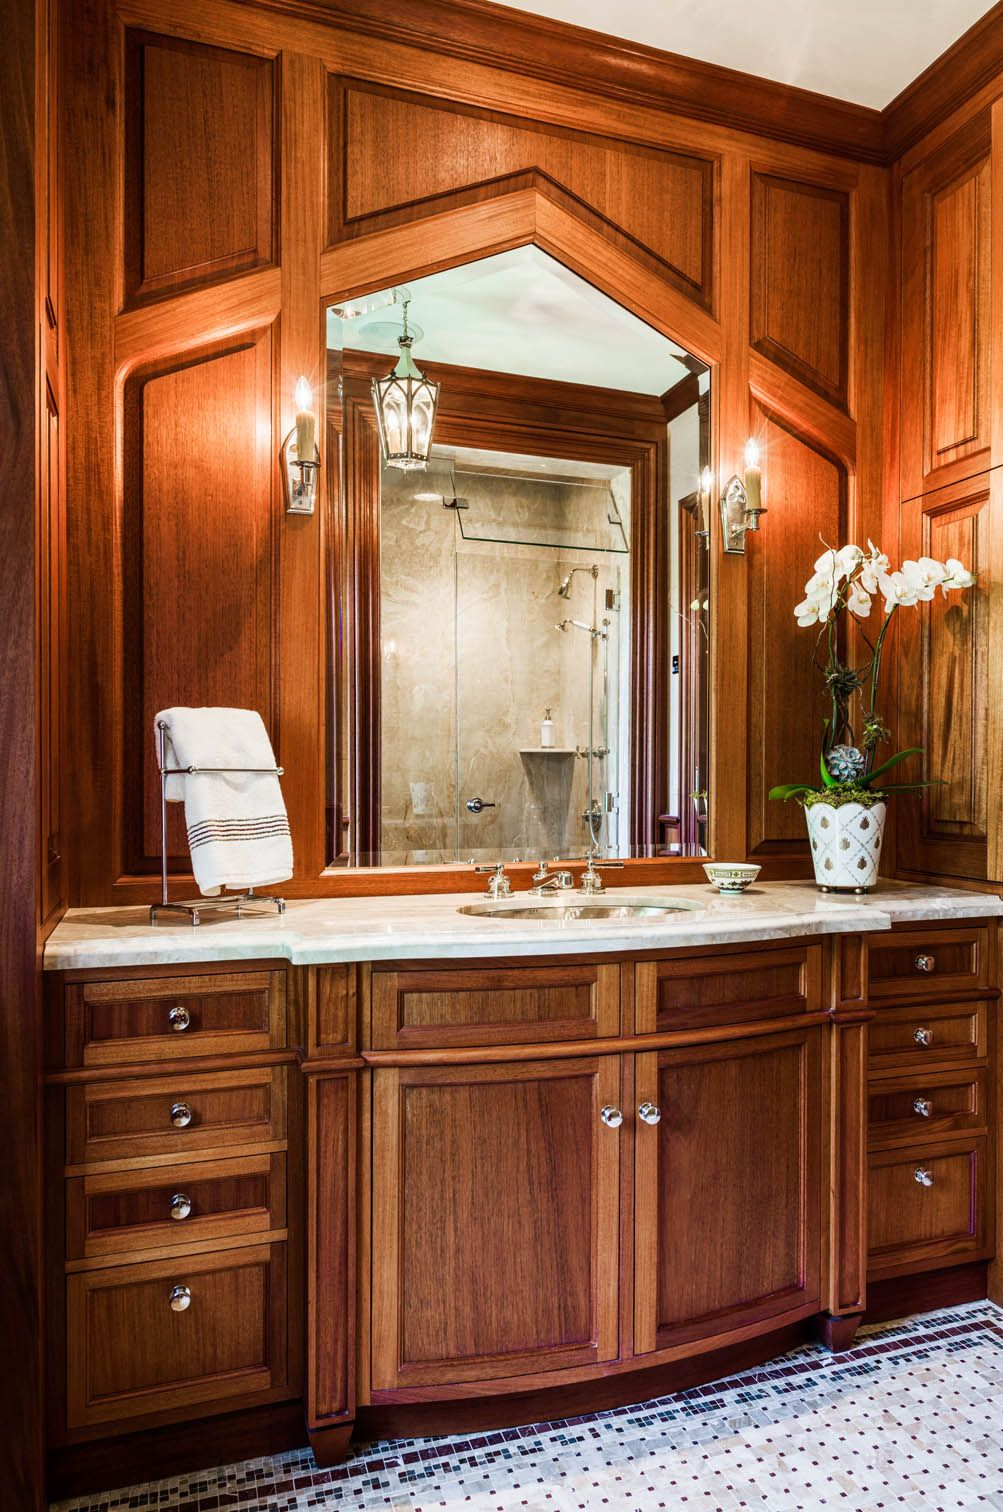 Rich Wood Panelled Rooms: Rich, Detailed Wood Paneling Create A Beautiful Vanity